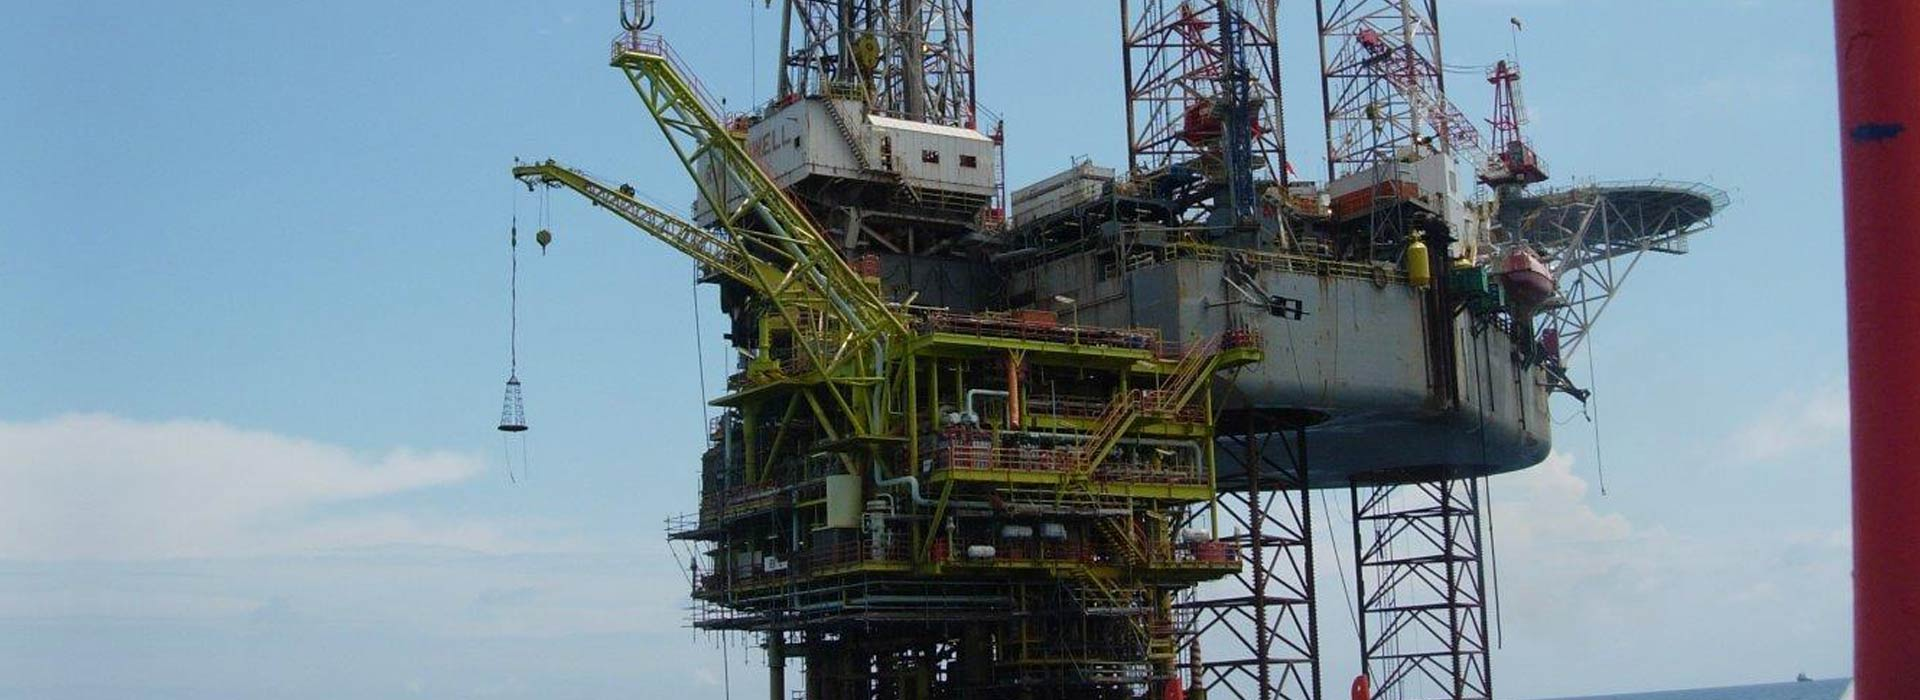 industrial licencing solutions oil rig at sea